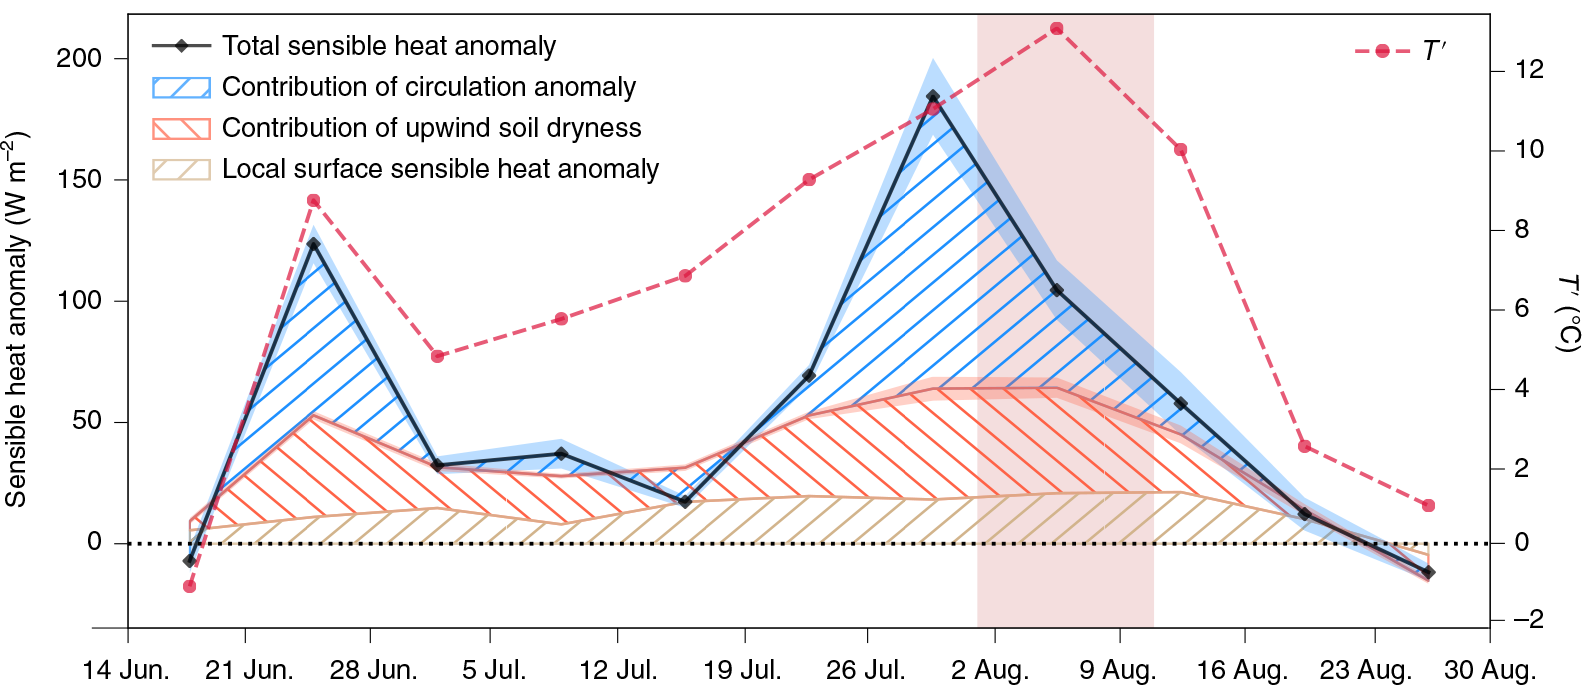 Temperatures throughout June and July shown by the red dashed line. The hatched areas show heat contributed by wind direction (blue), local soil dryness (brown), and soil dryness around Kazakhstan (red).